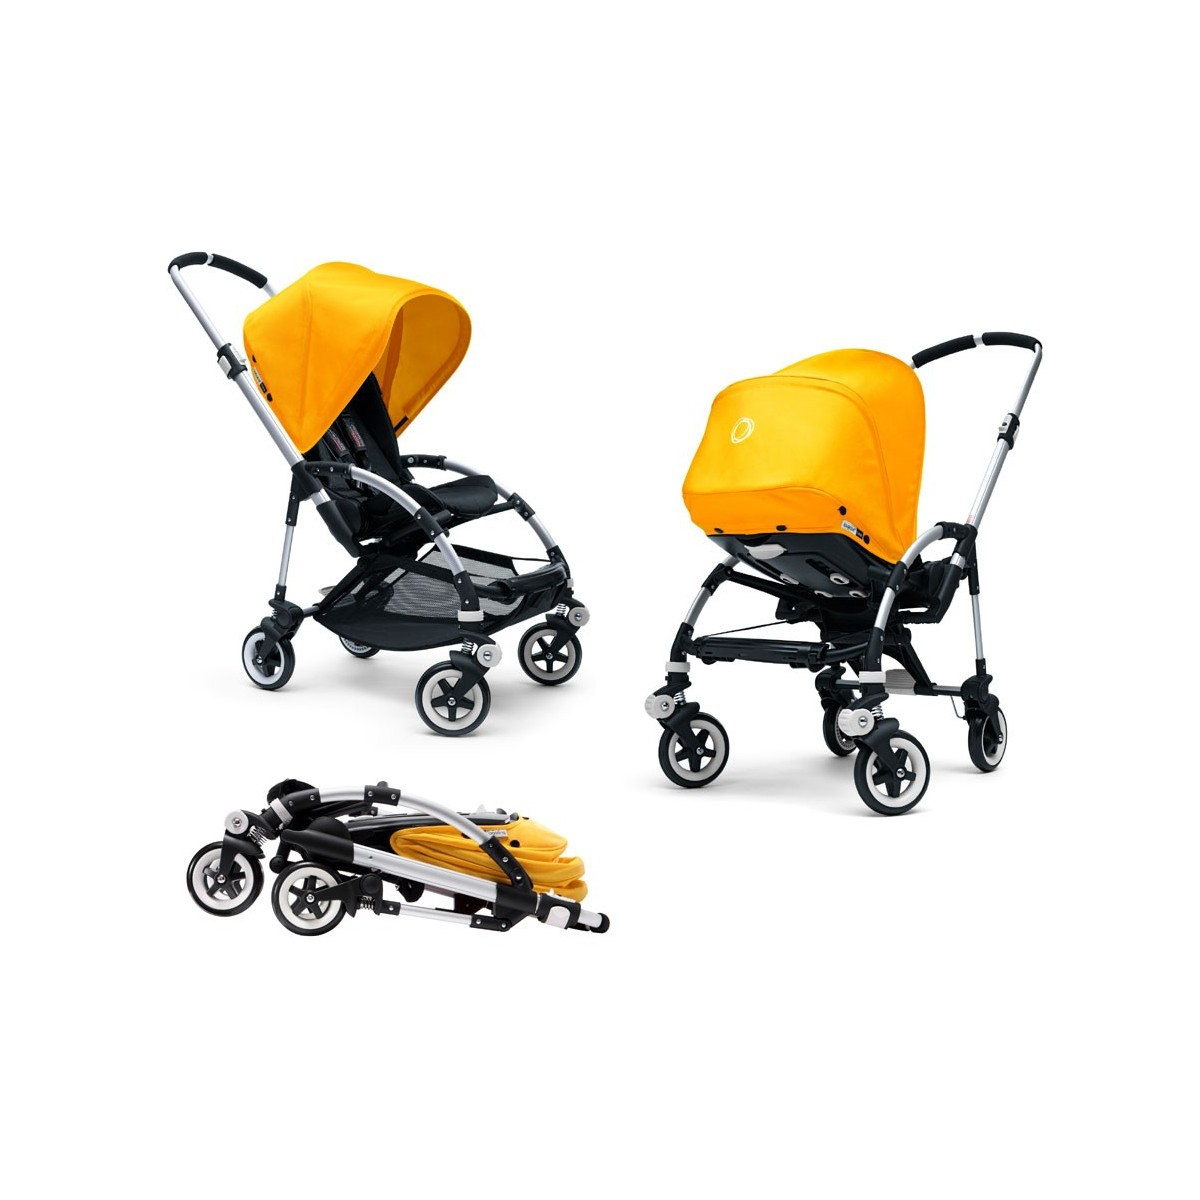 28 Best *Baby Transport > Baby Strollers* images | Baby ...